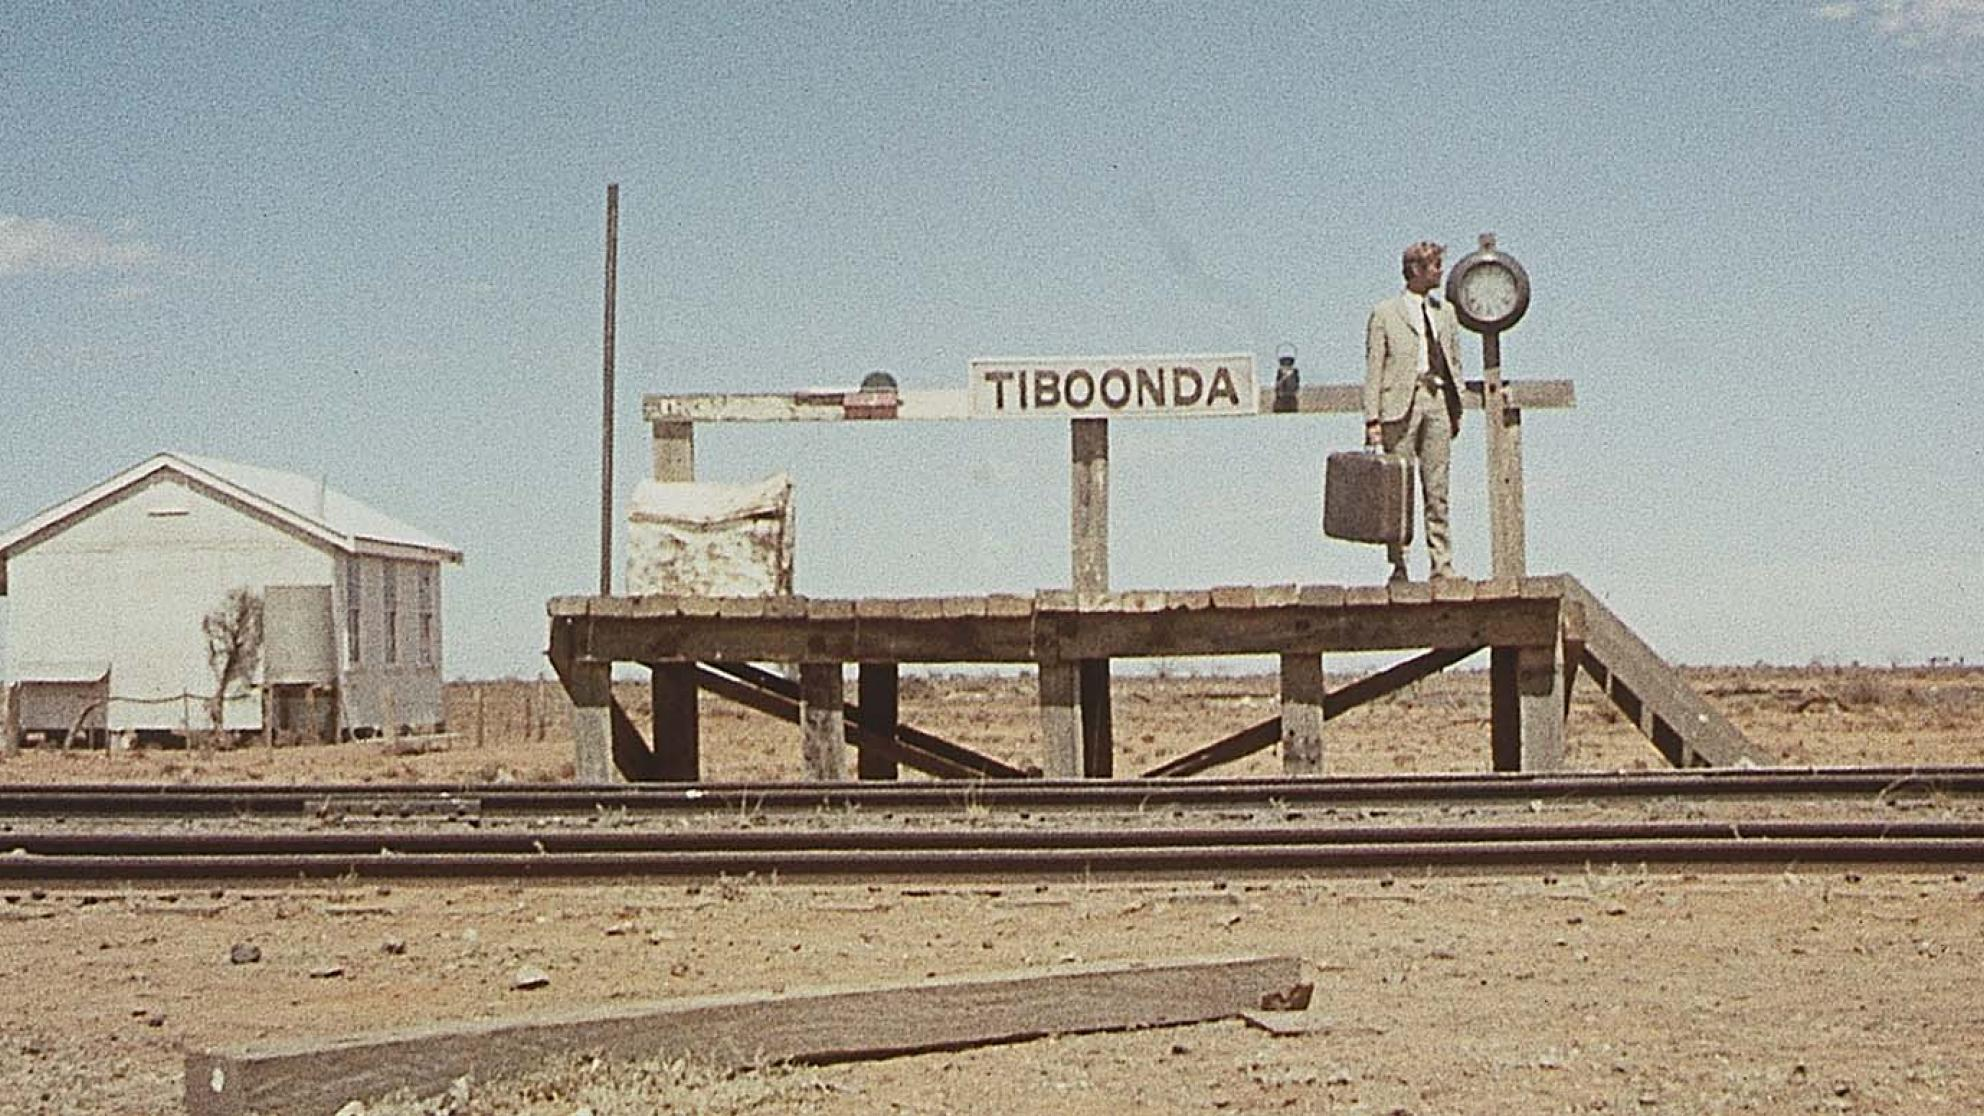 John Grant waits alone on an outback railway station platform in a still from the 1971 film Wake in Fright